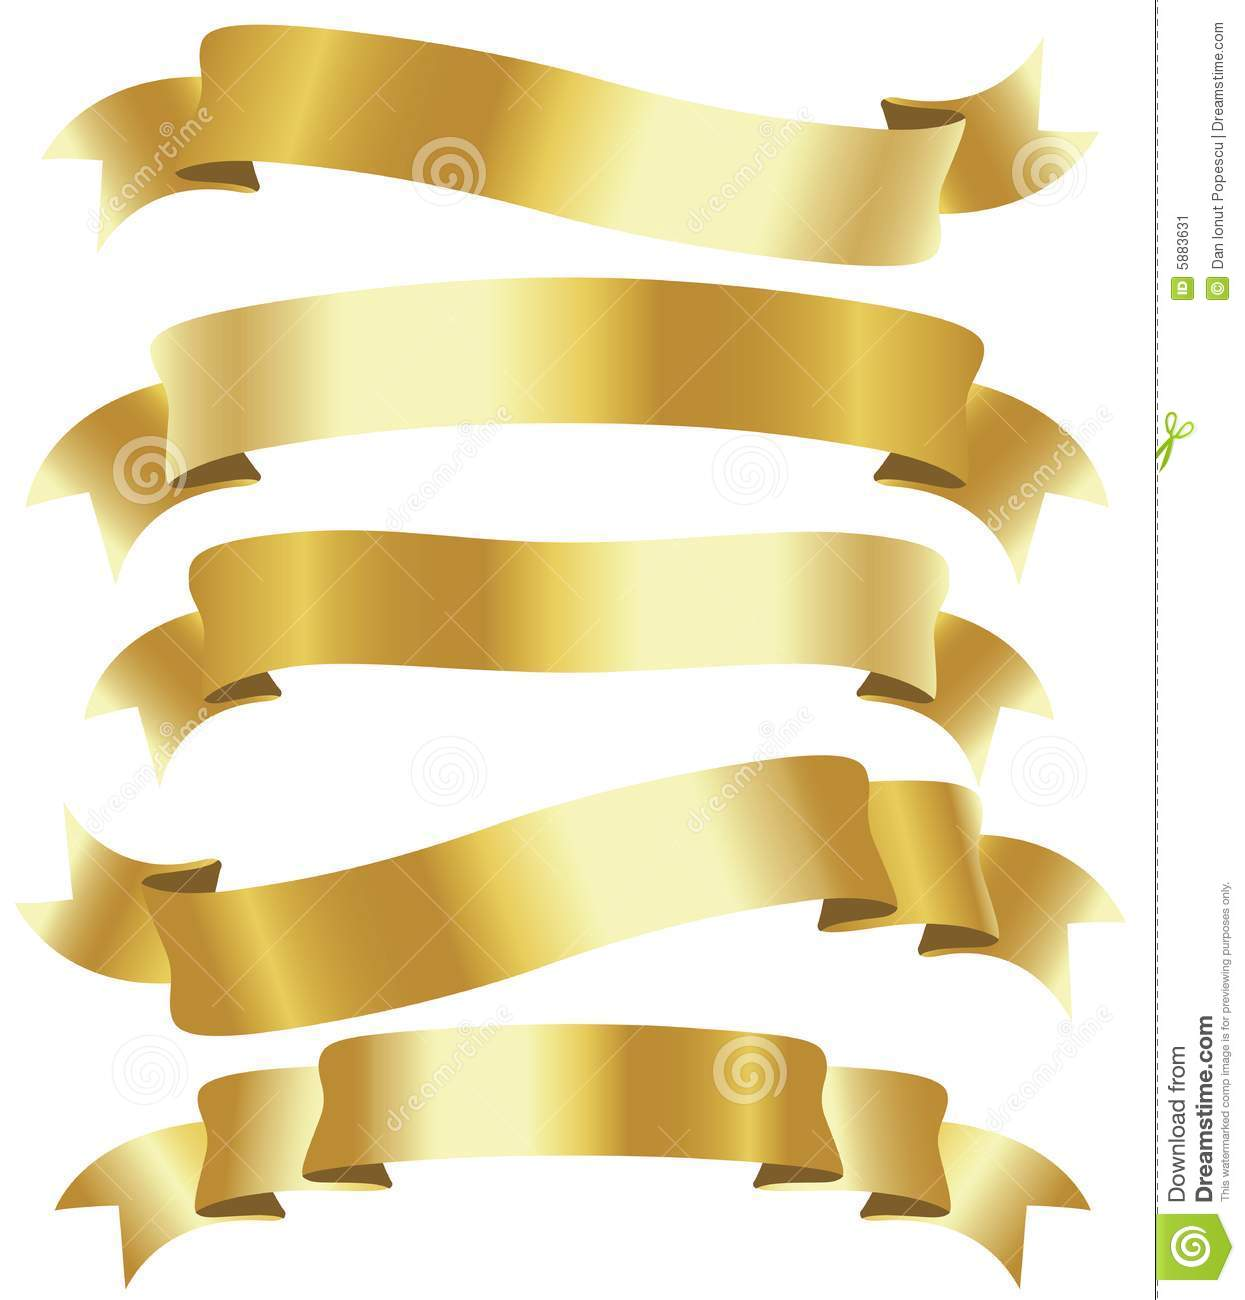 Gold Ribbon Clip Art Golden Ribbons